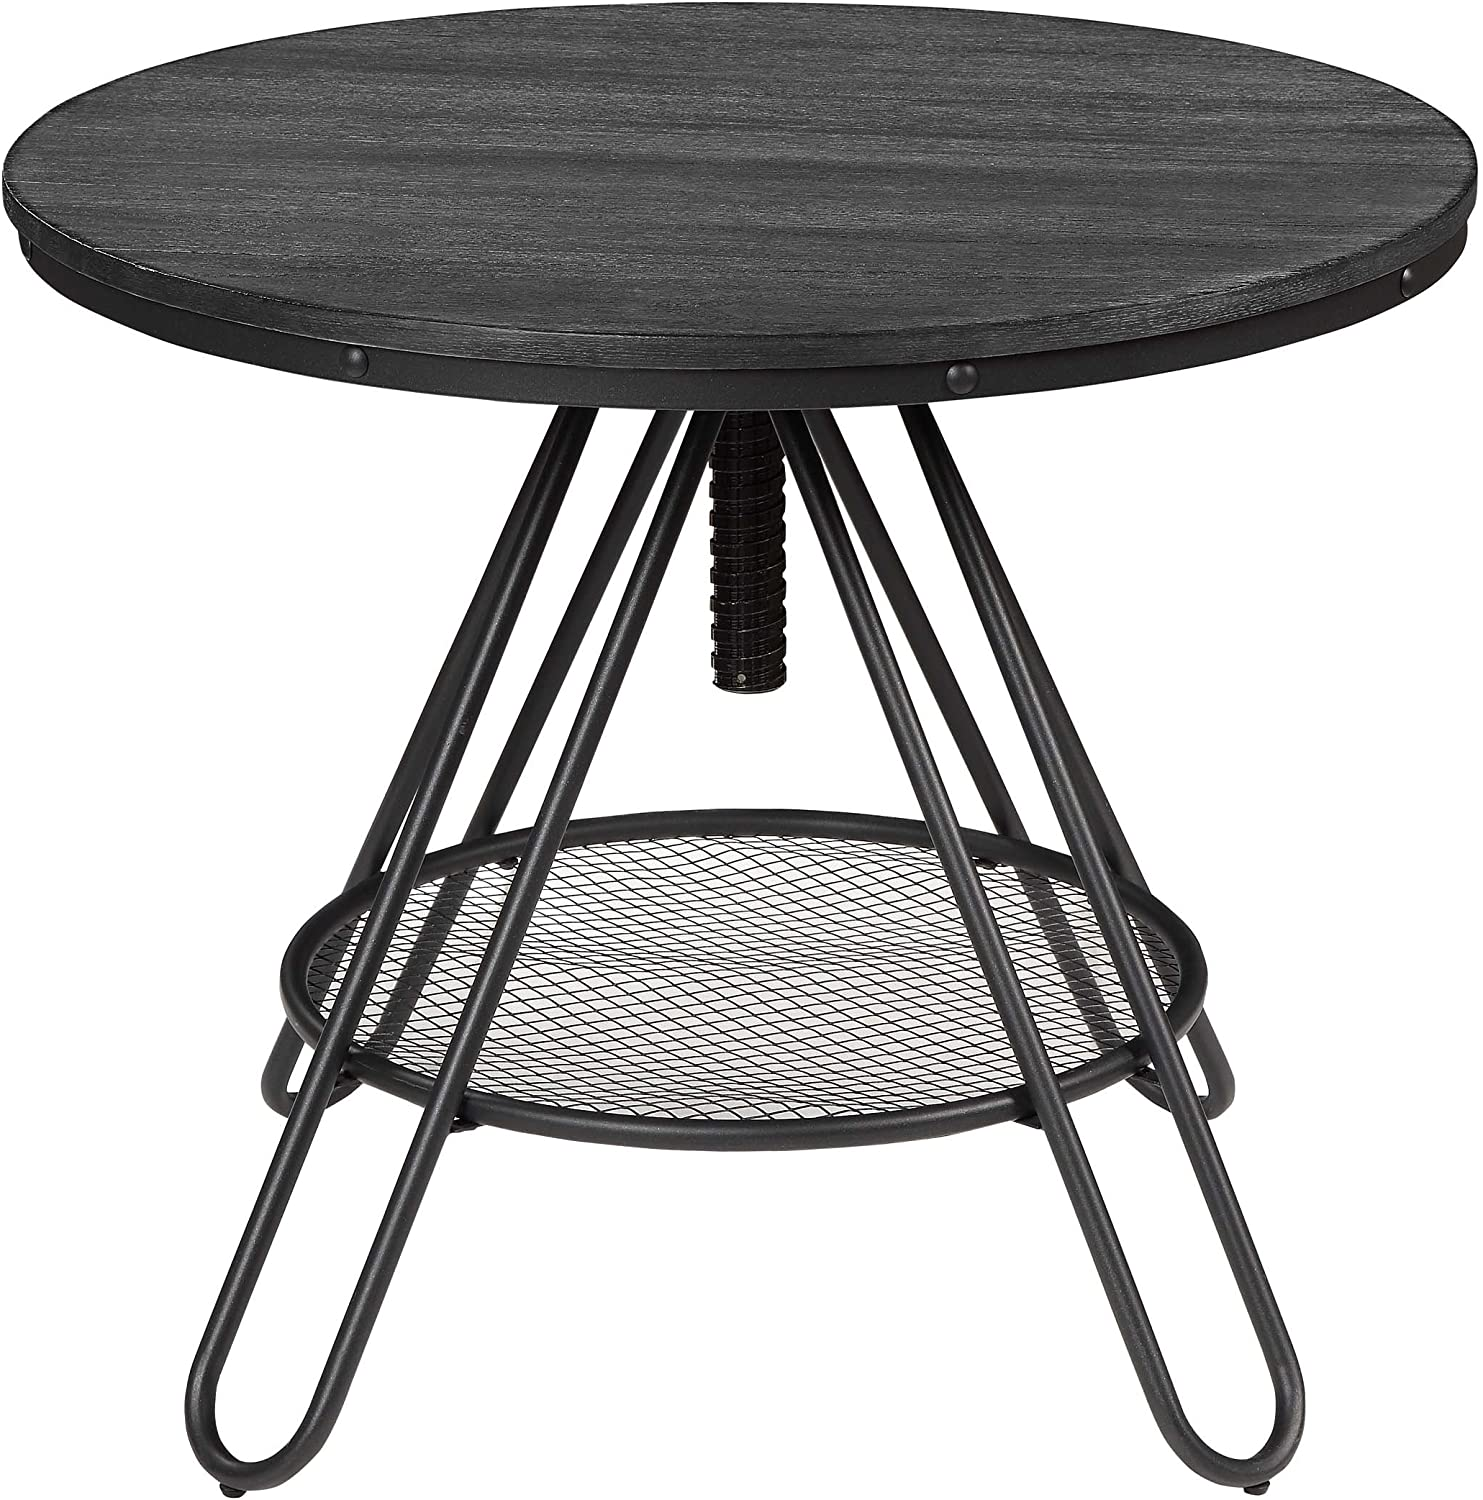 Homelegance Cirrus 36 Adjustable Round Counter Height Table, Black